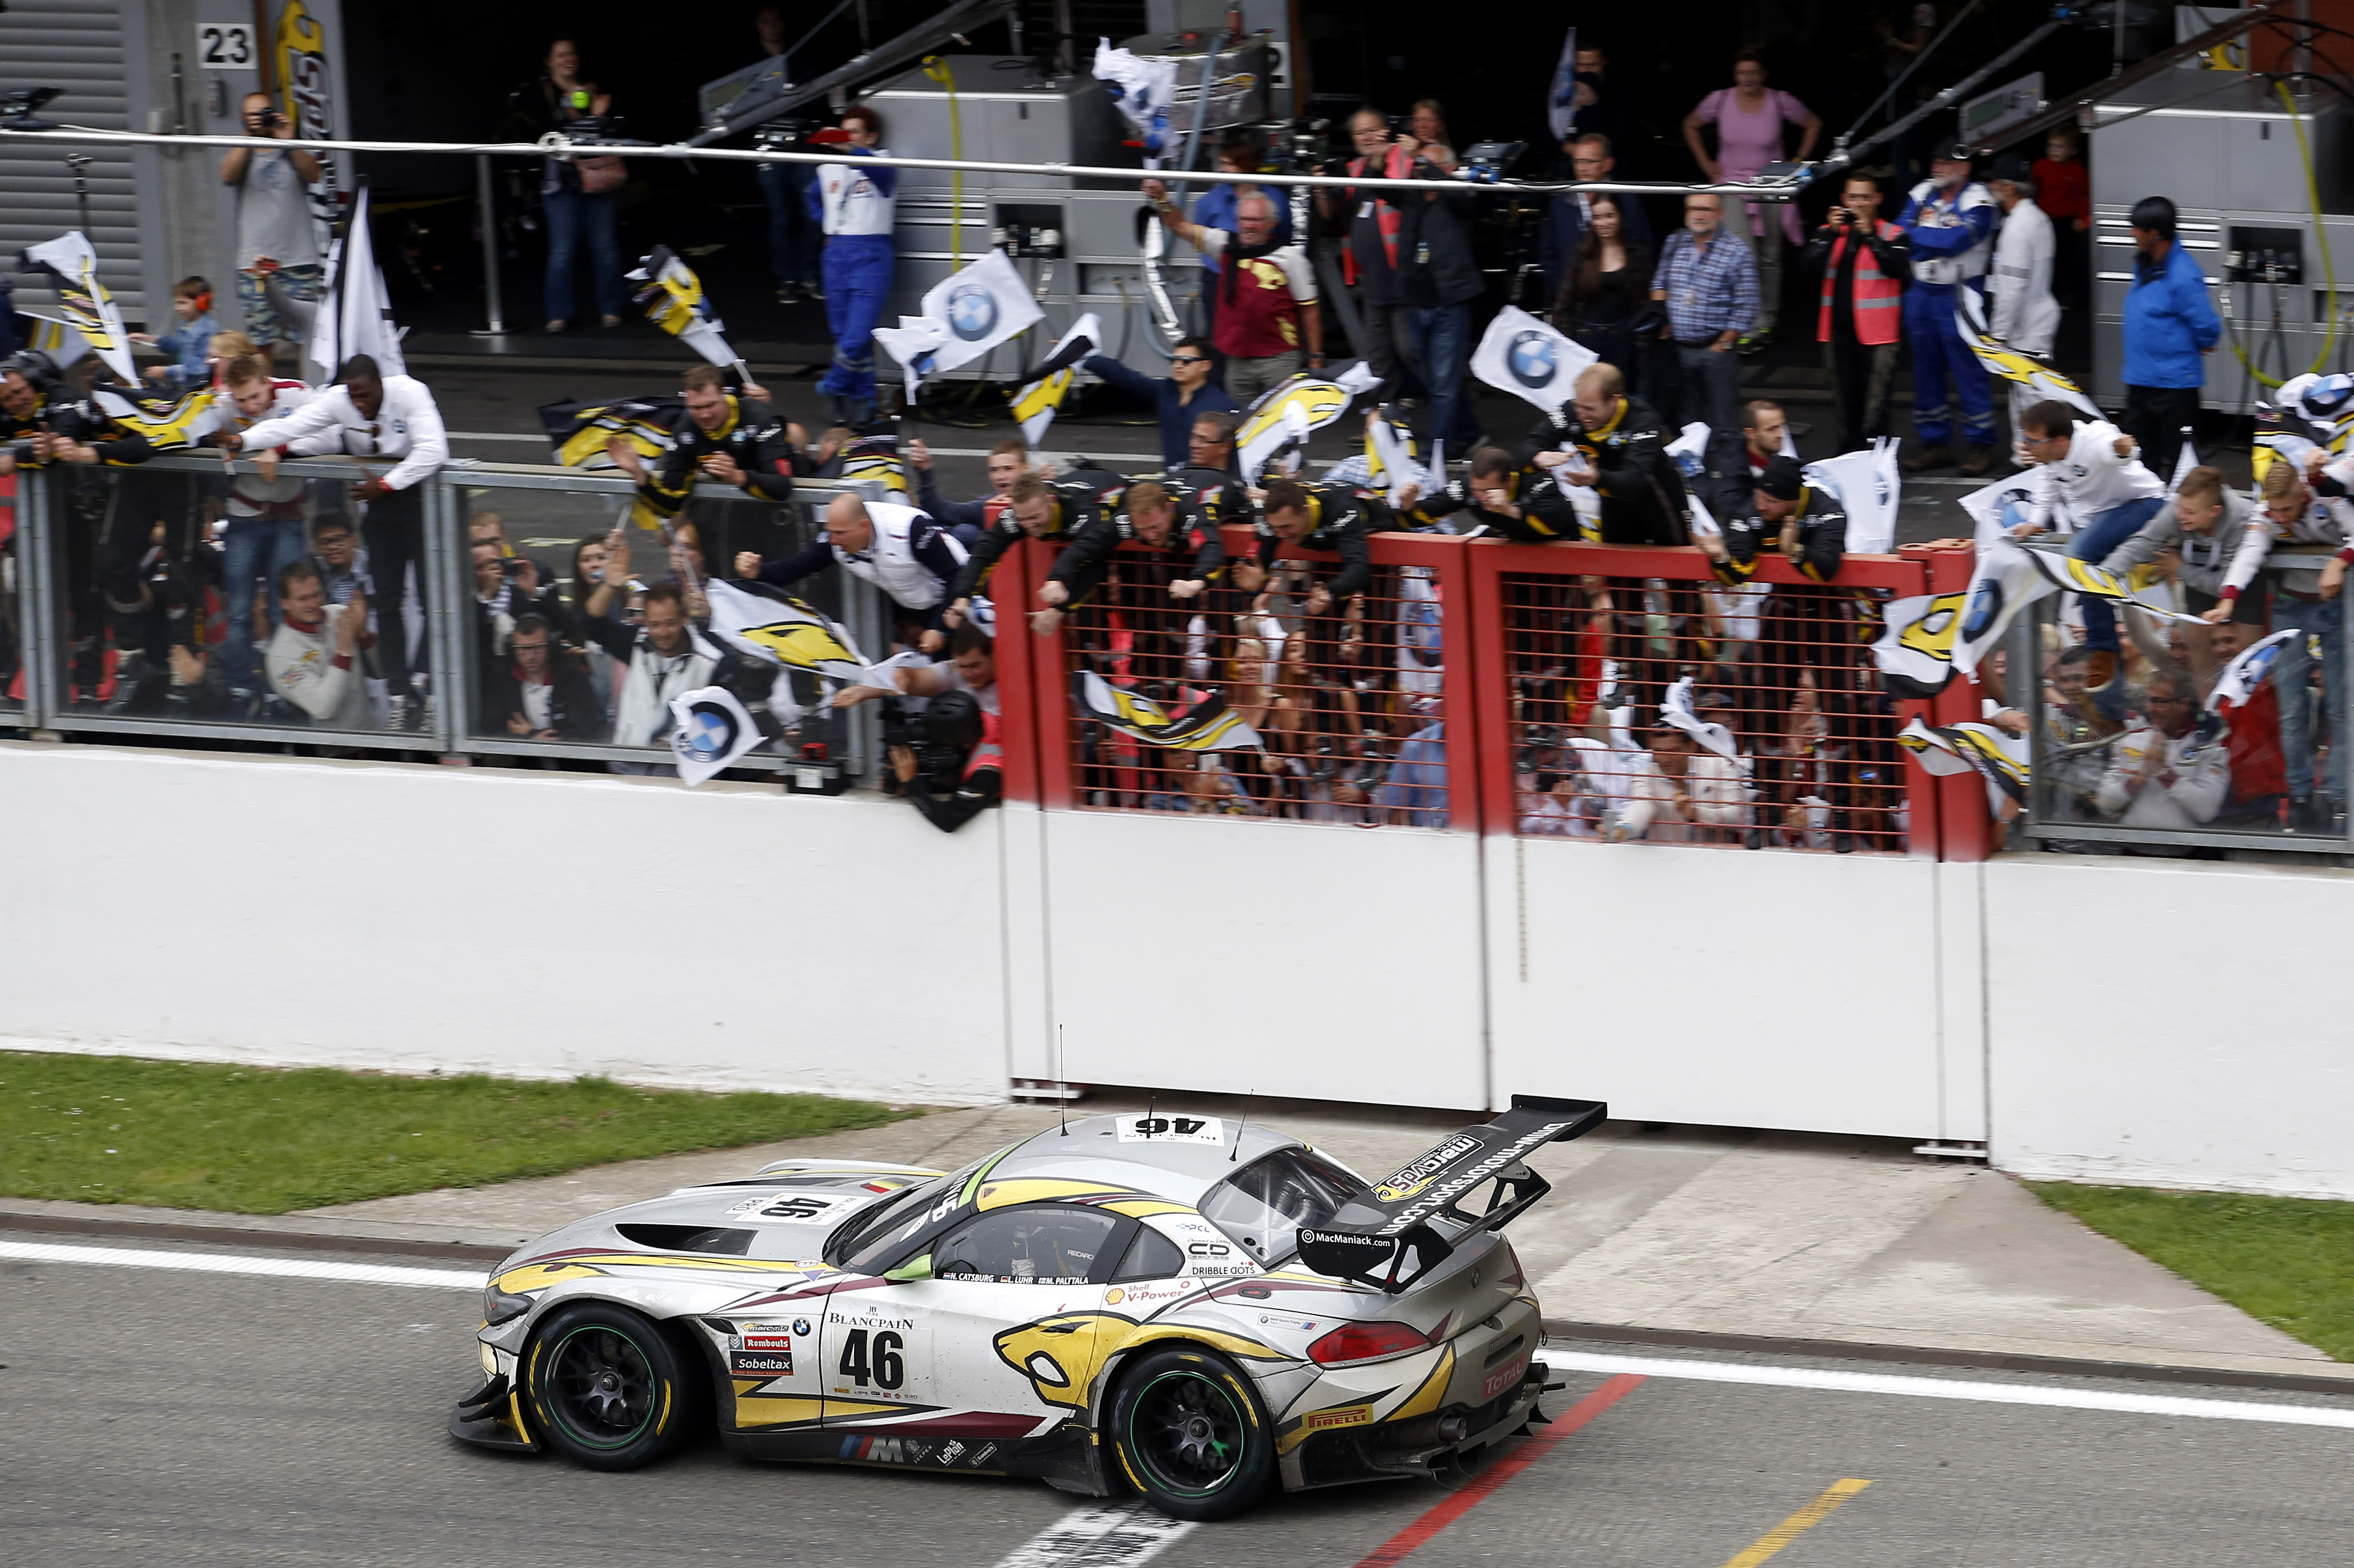 bmw z4 gt3 claims overall victory at spa 24 hours motrface. Black Bedroom Furniture Sets. Home Design Ideas